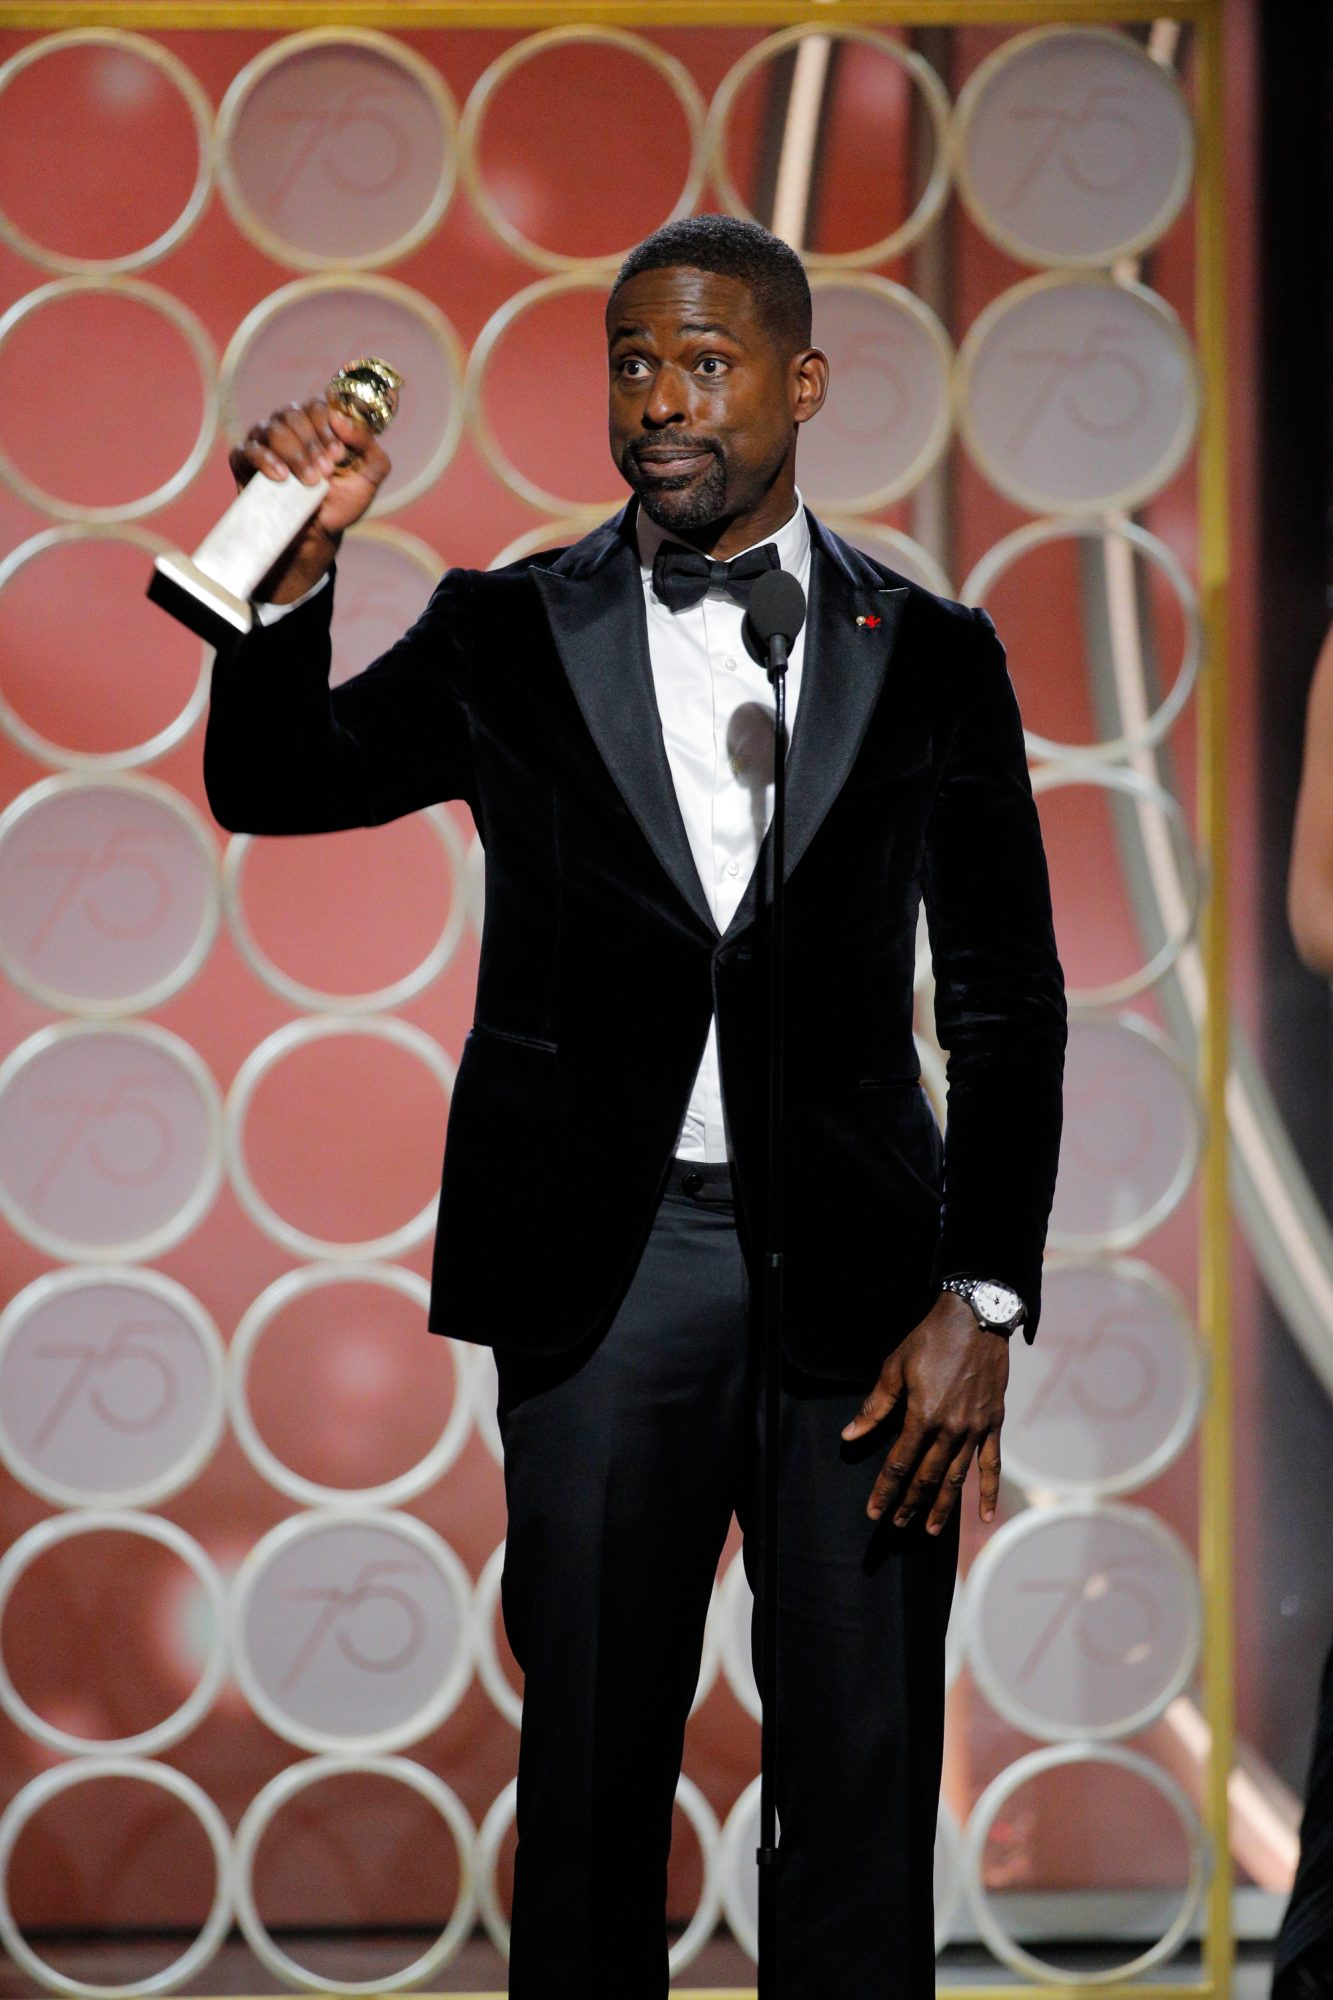 Sterling K. Brown Makes Golden Globes History as First Black Actor to Win TV Drama Award